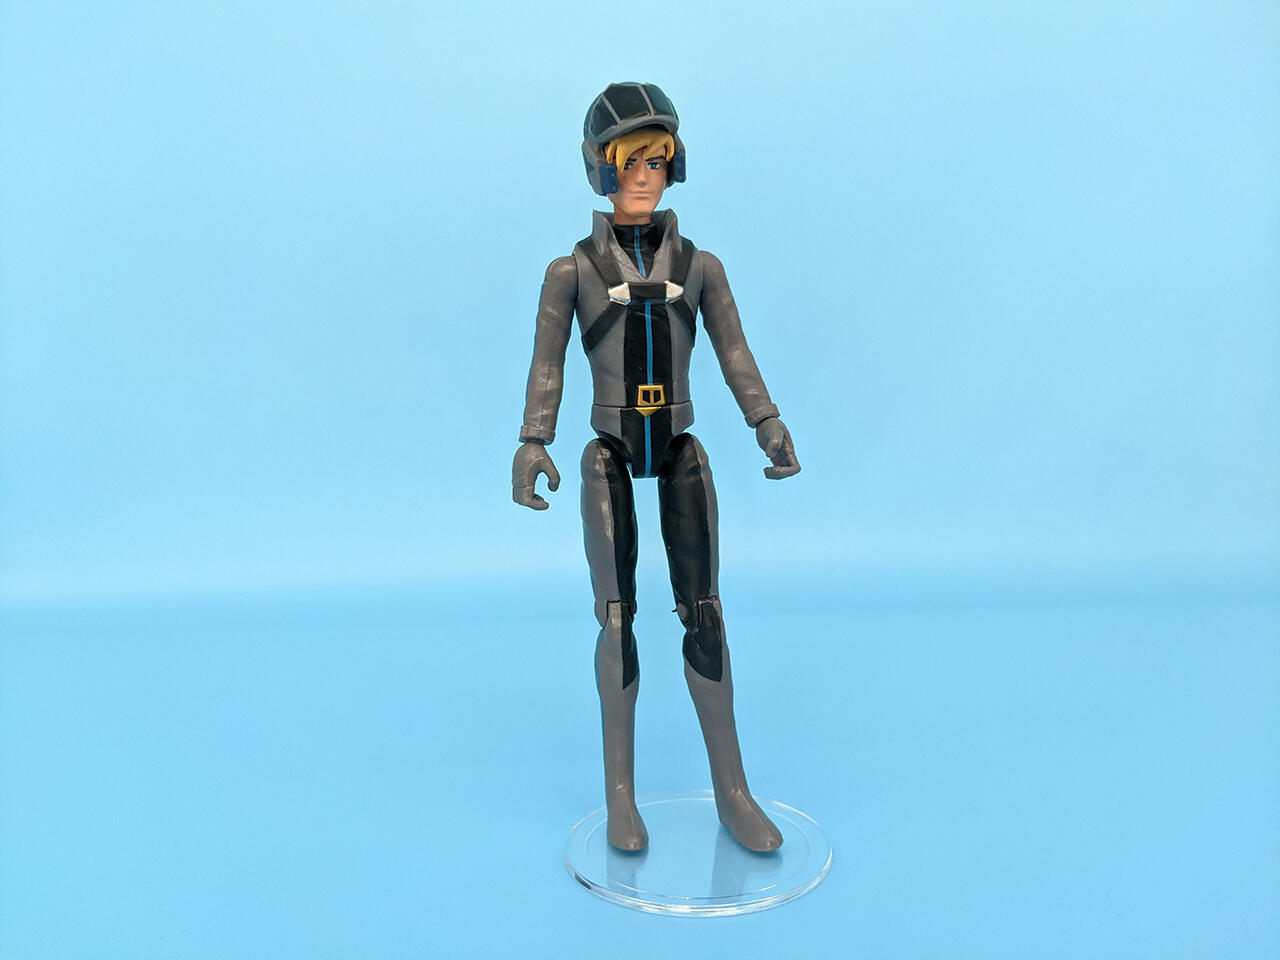 Roy Fokker comes with a helmet